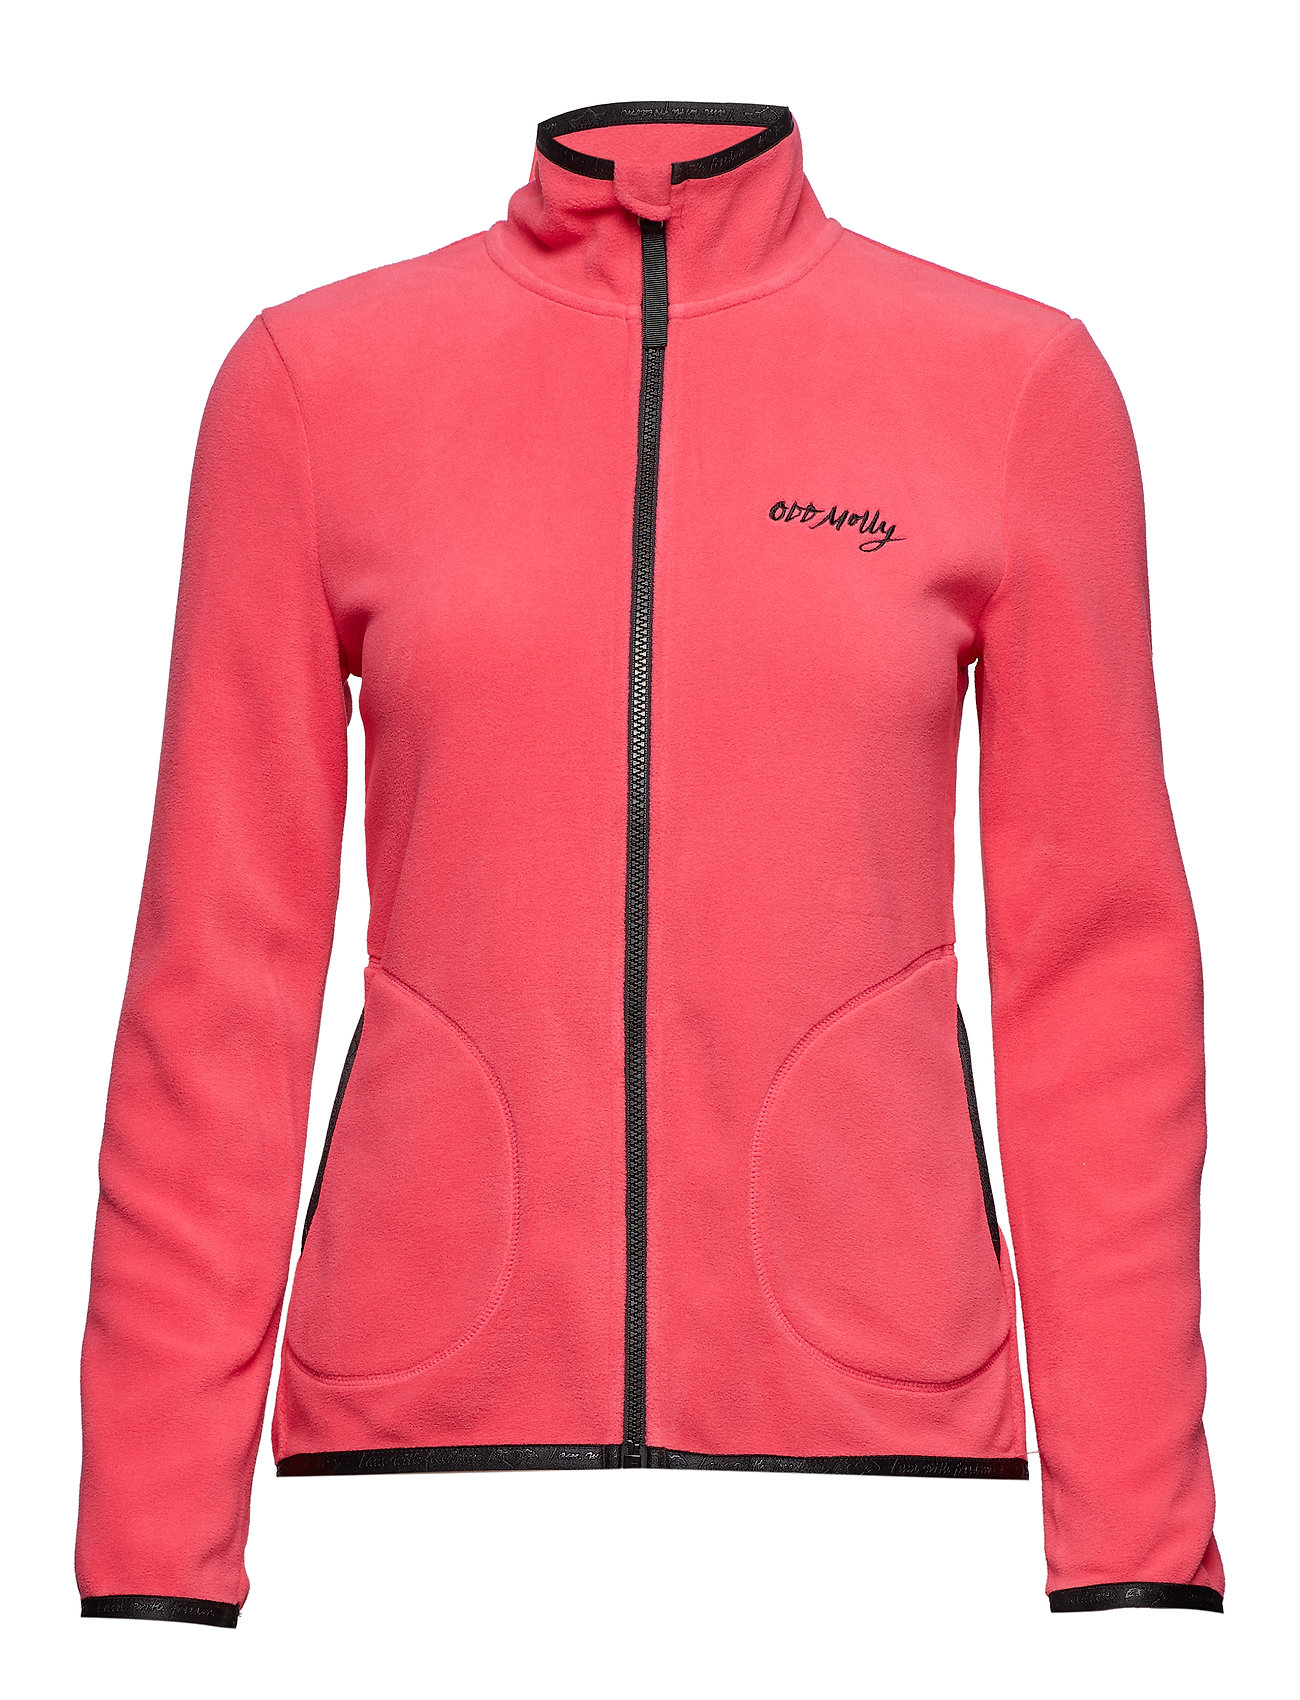 ODD MOLLY ACTIVE WEAR tougher mid layer jacket - RASPBERRY